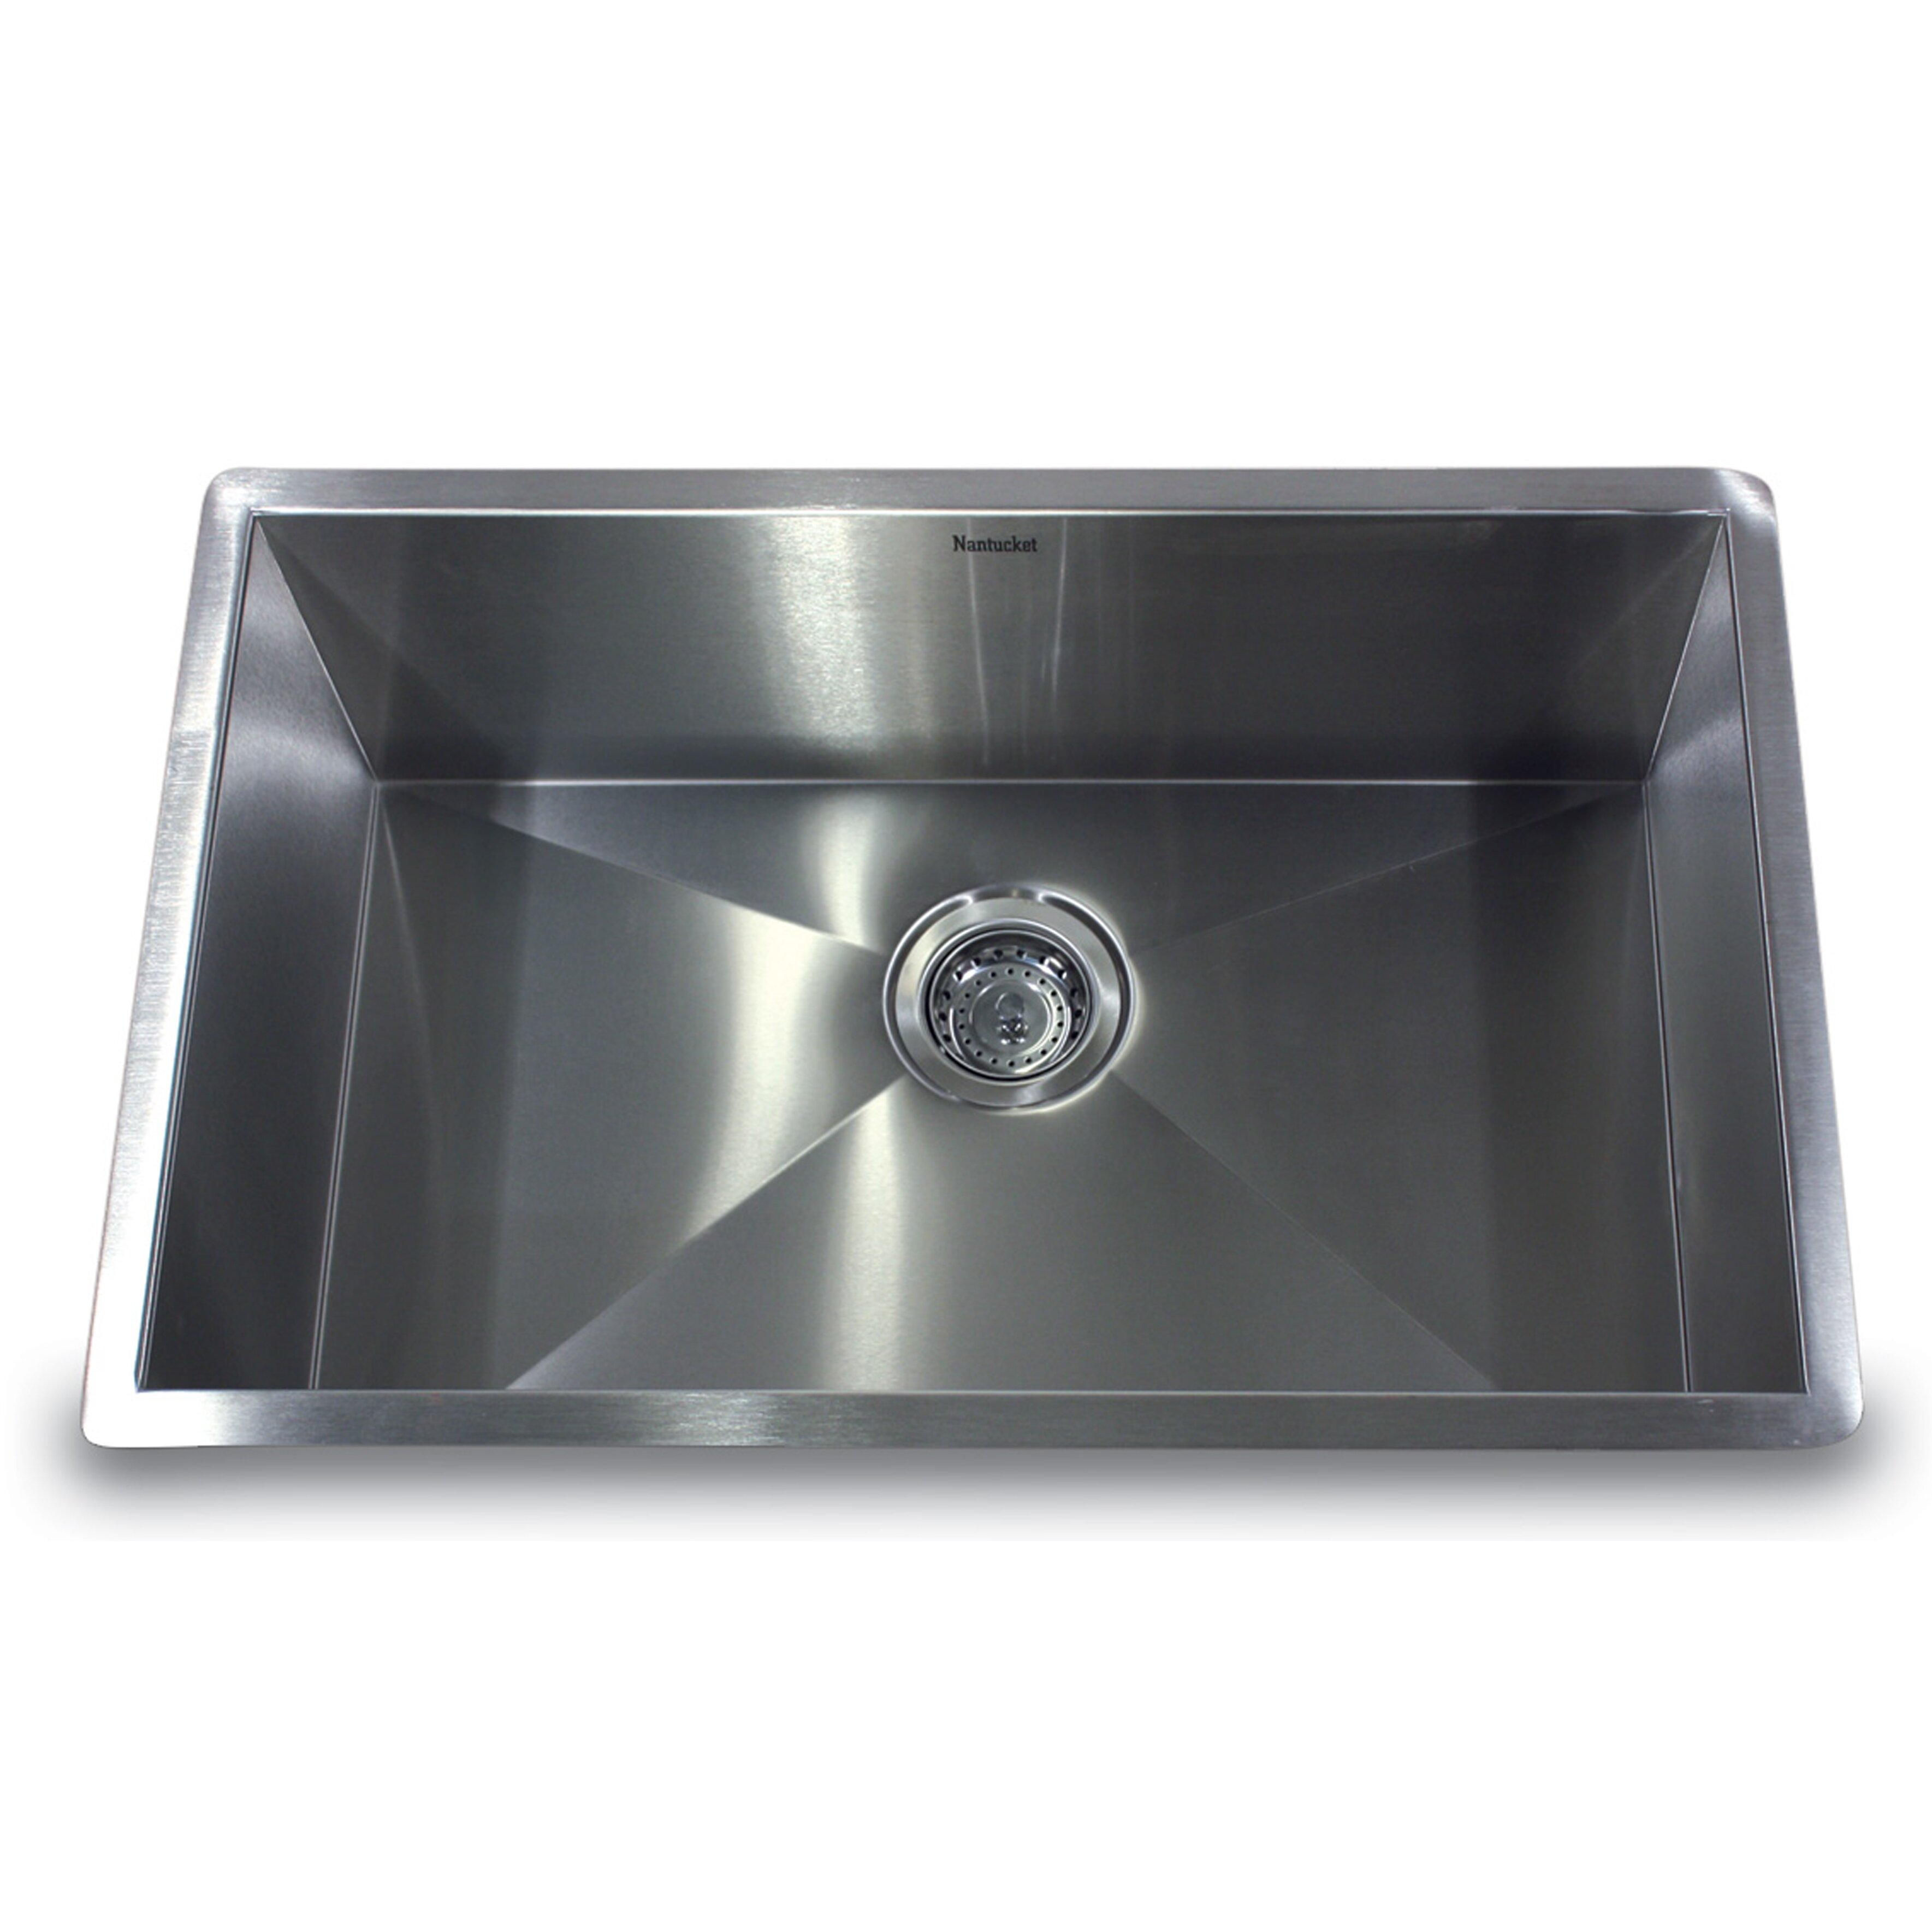 nantucket sinks pro series 28 x 18 large rectangle stainless steel single bowl kitchen sink. Black Bedroom Furniture Sets. Home Design Ideas